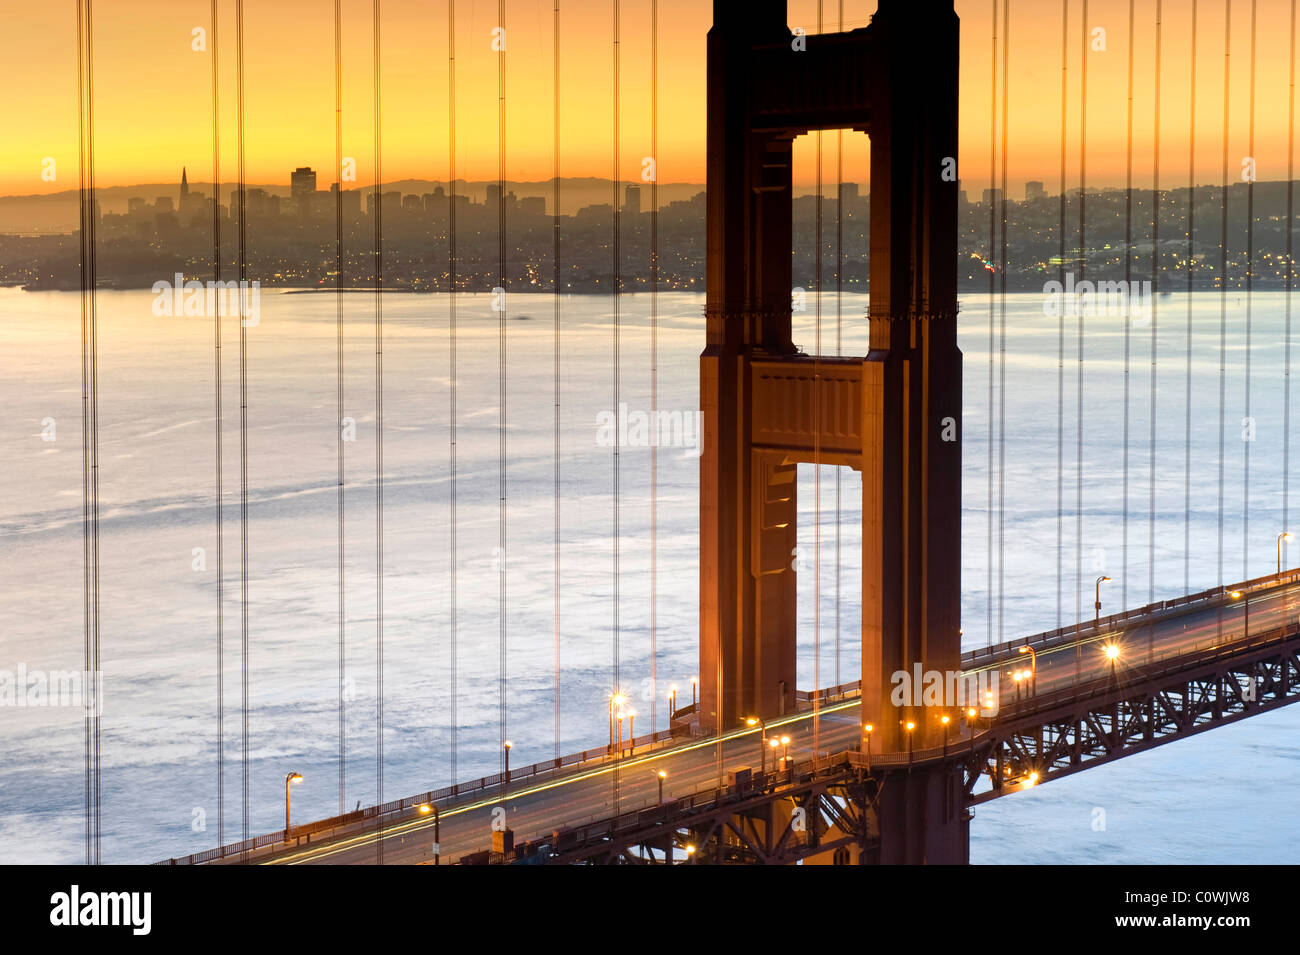 États-unis, Californie, San Francisco, Ville et Golden Gate Bridge Photo Stock